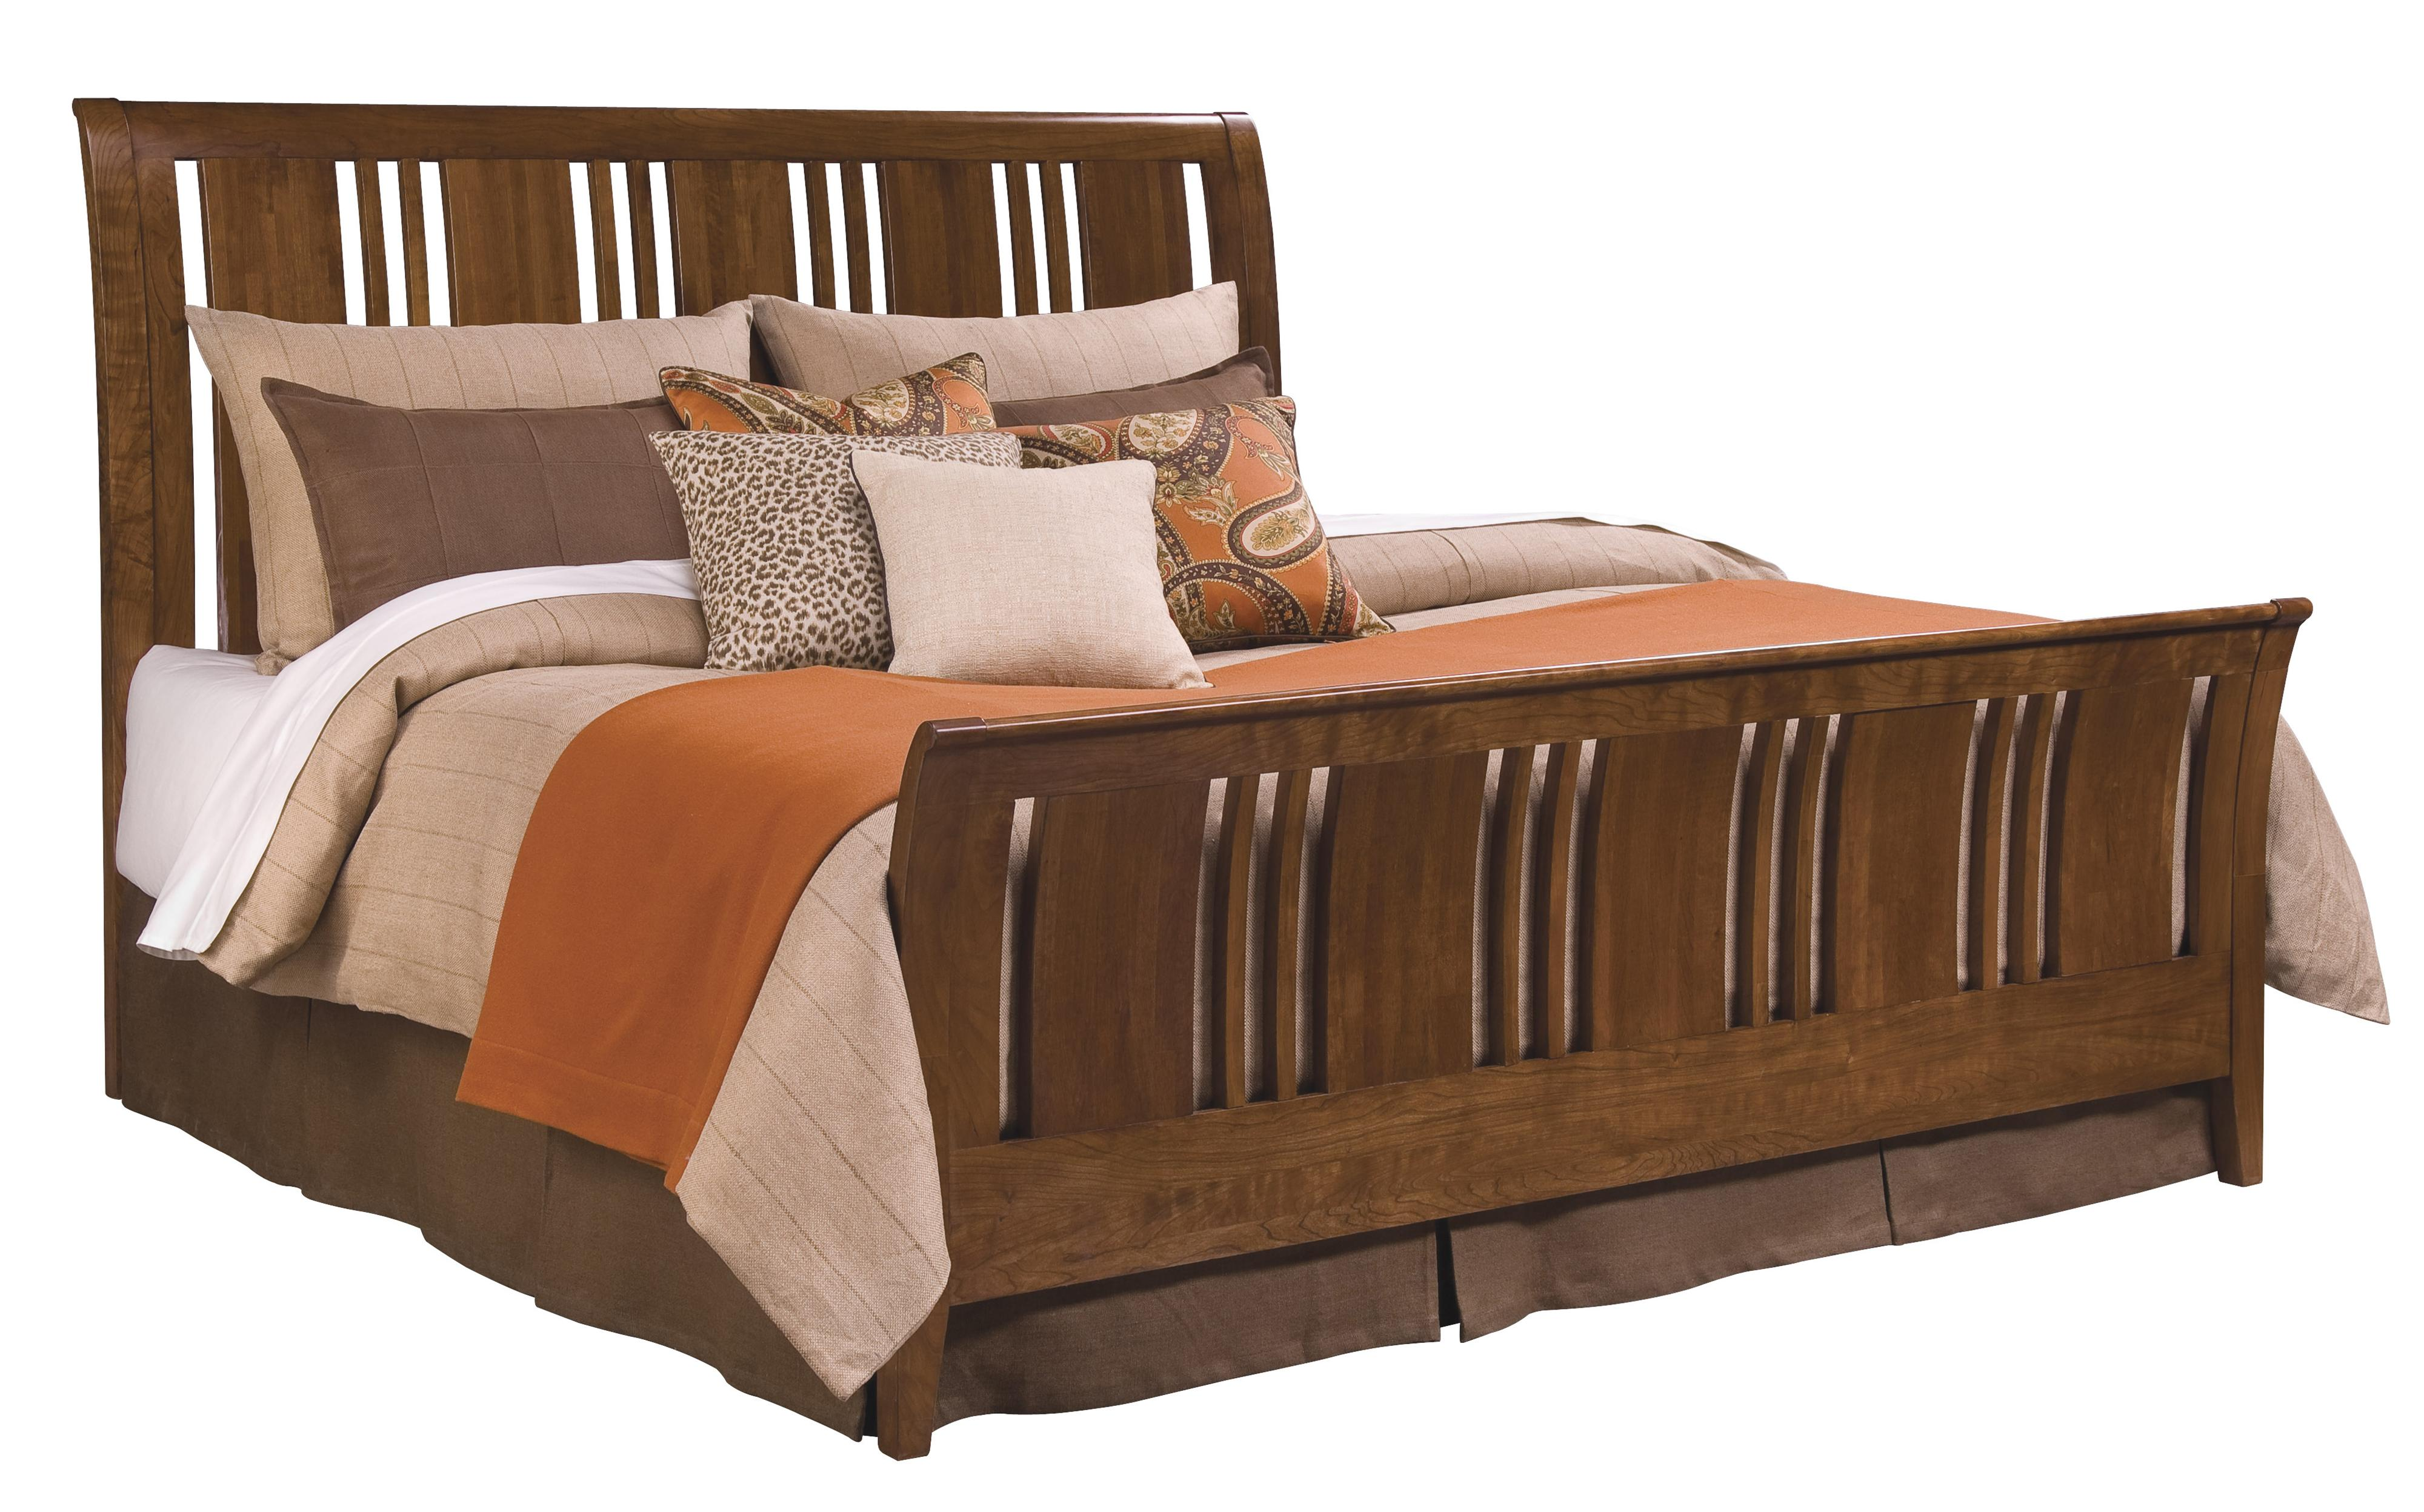 Kincaid Furniture Cherry Park King Sleigh Bed - Item Number: 63-152H+F